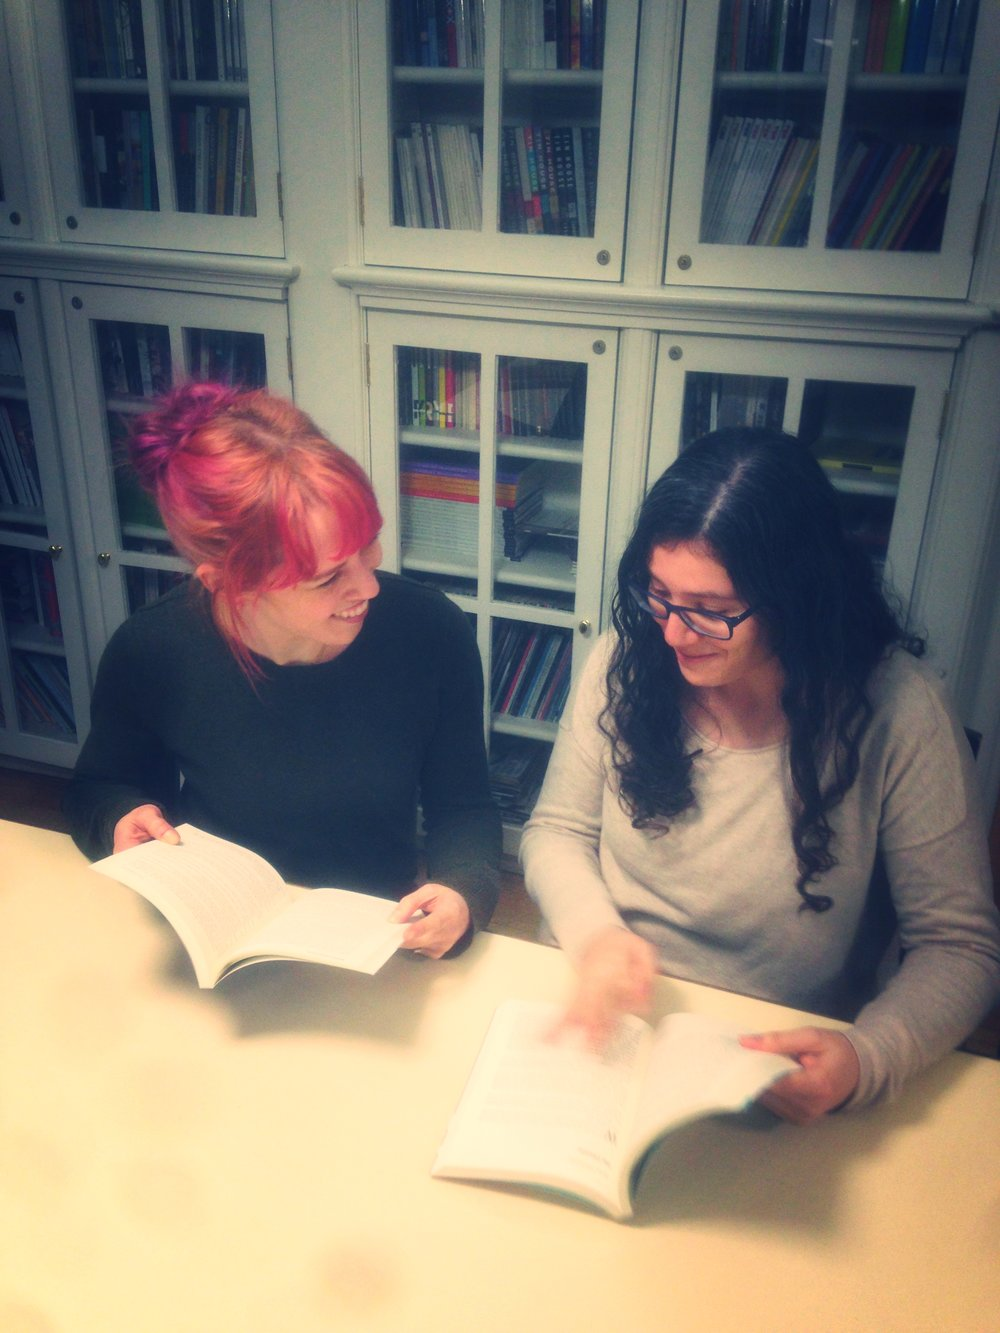 Assistant Fiction Editor Alyssa diPierro (LEFT) and Fiction Editor Bruna Dantas Lobato (RIGHT) pretend to flip through old Washington Square Review journals at the Creative Writing House.